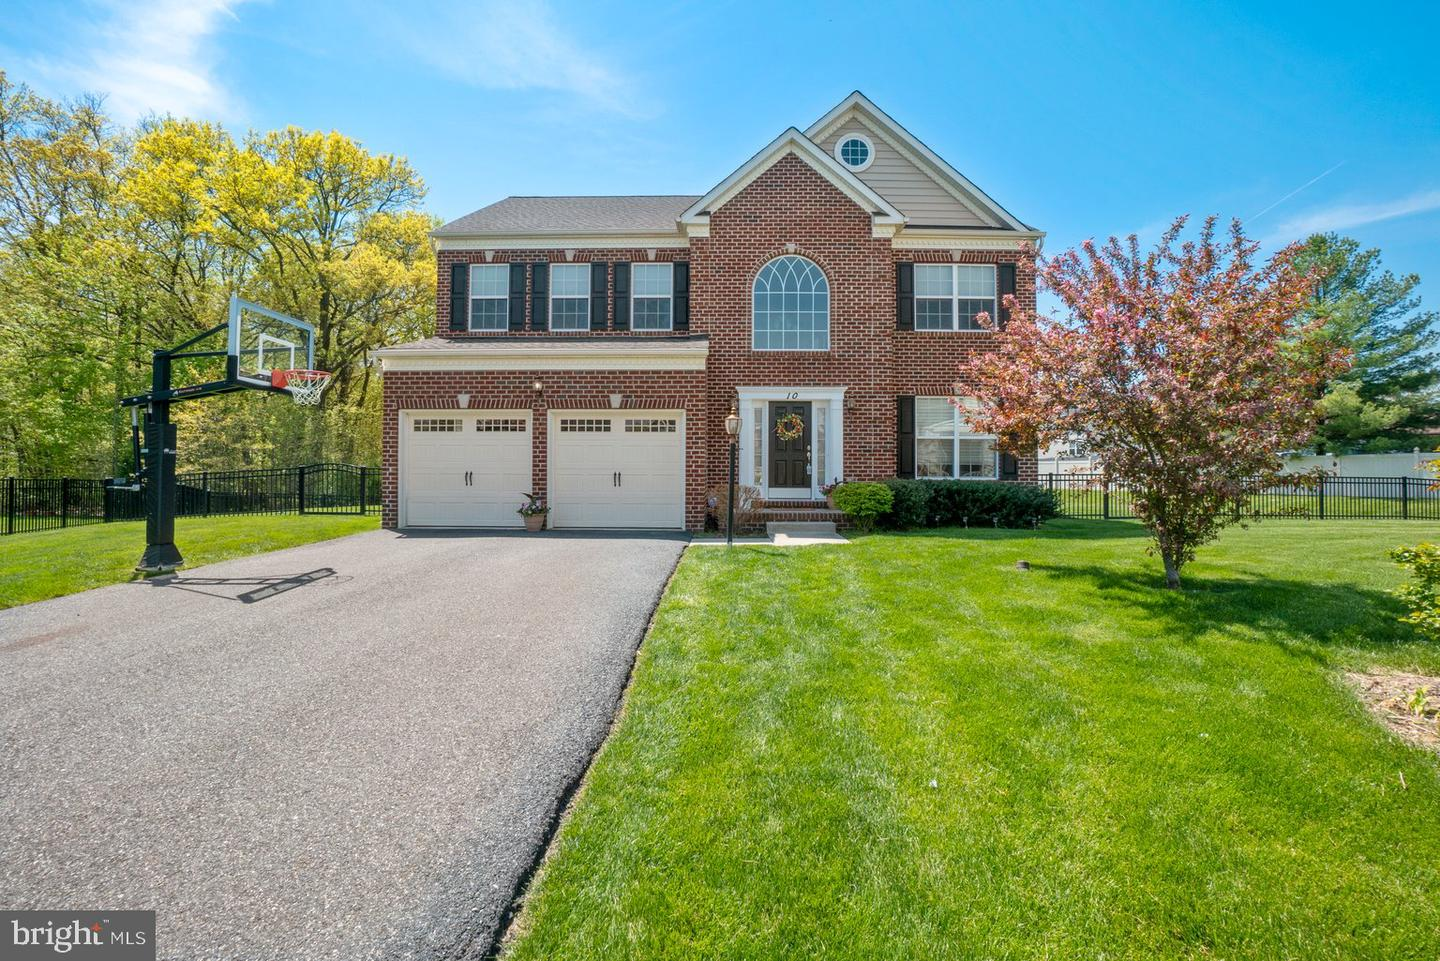 10 FORGE CROSSING CT, PERRY HALL, Maryland 21128, 4 Bedrooms Bedrooms, ,4 BathroomsBathrooms,Single Family,For Sale,10 FORGE CROSSING CT,MDBC527158